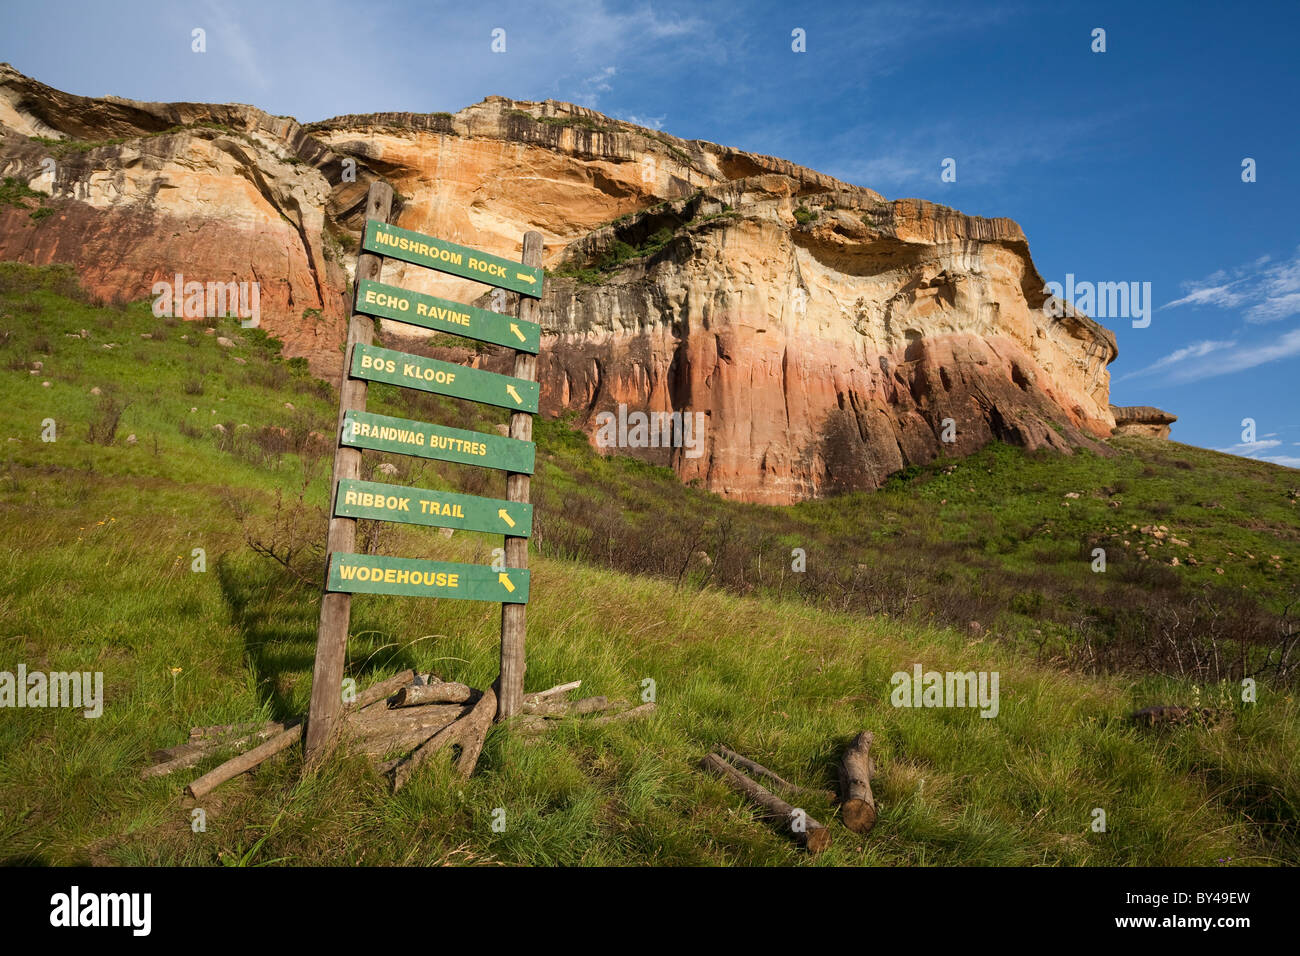 Walking trail signs near the sandstone cliffs in the Golden Gate Highlands National Park, South Africa. Stock Photo